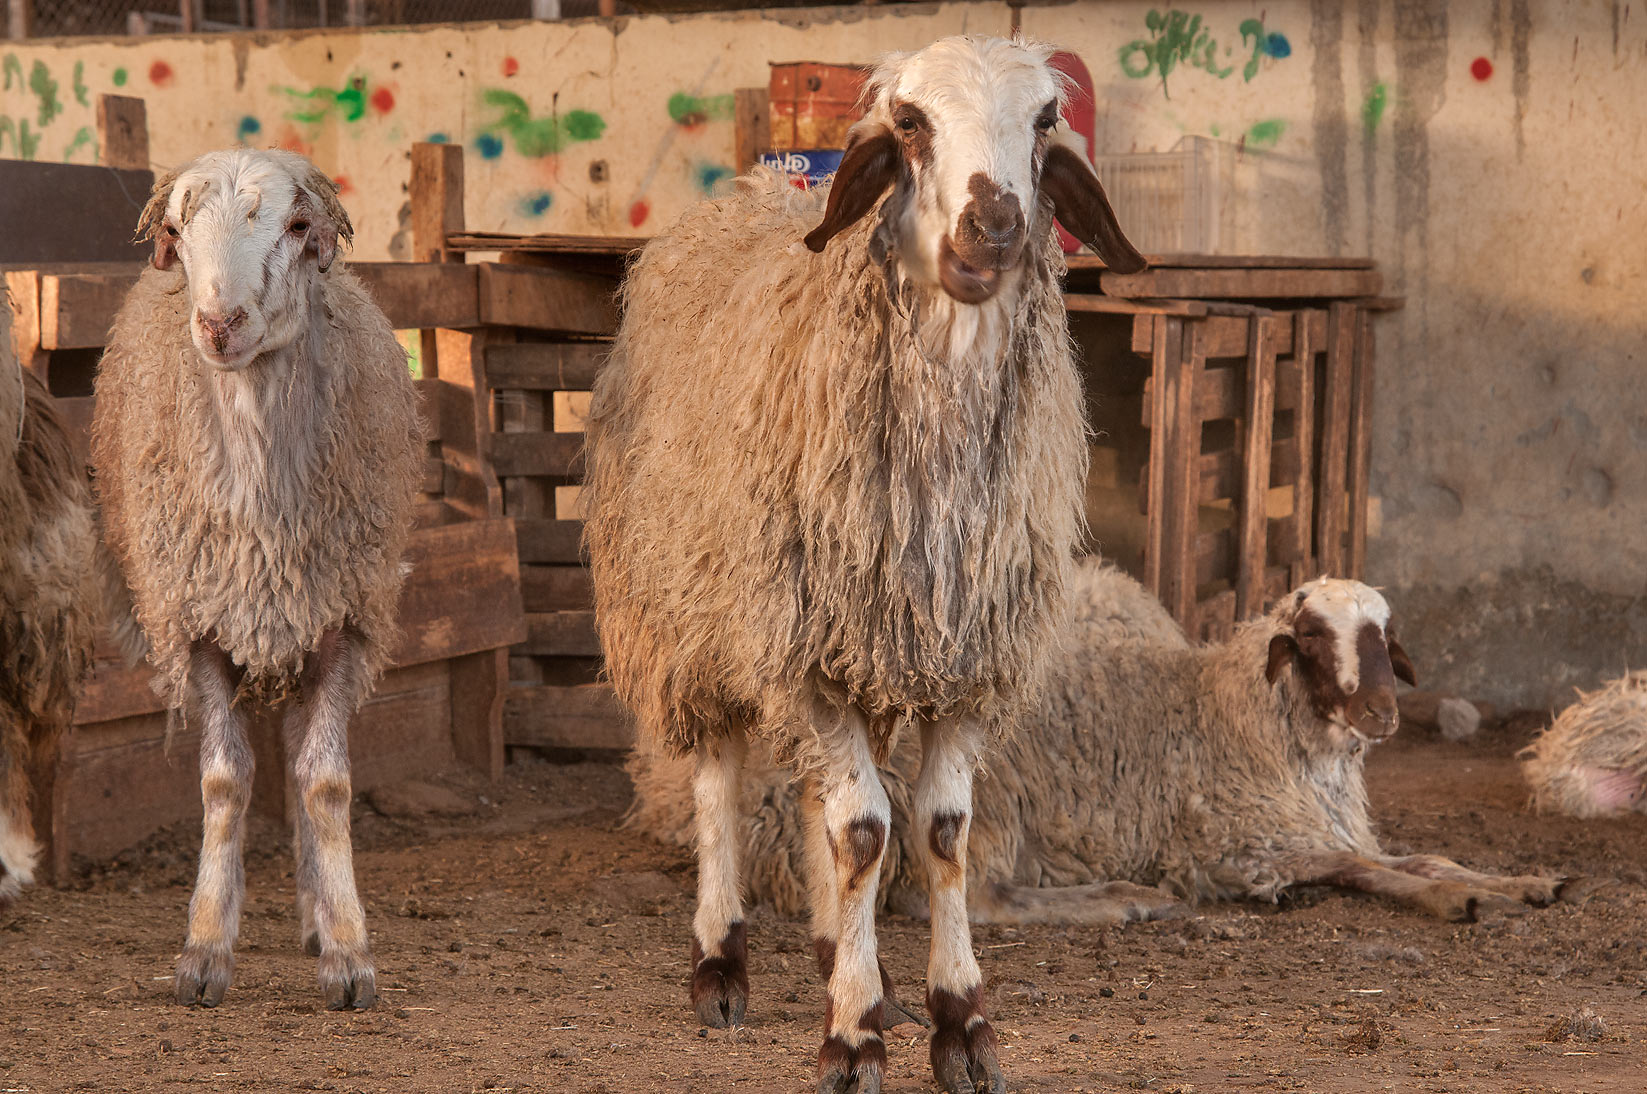 Two sheep in livestock market, Abu Hamour area. Doha, Qatar